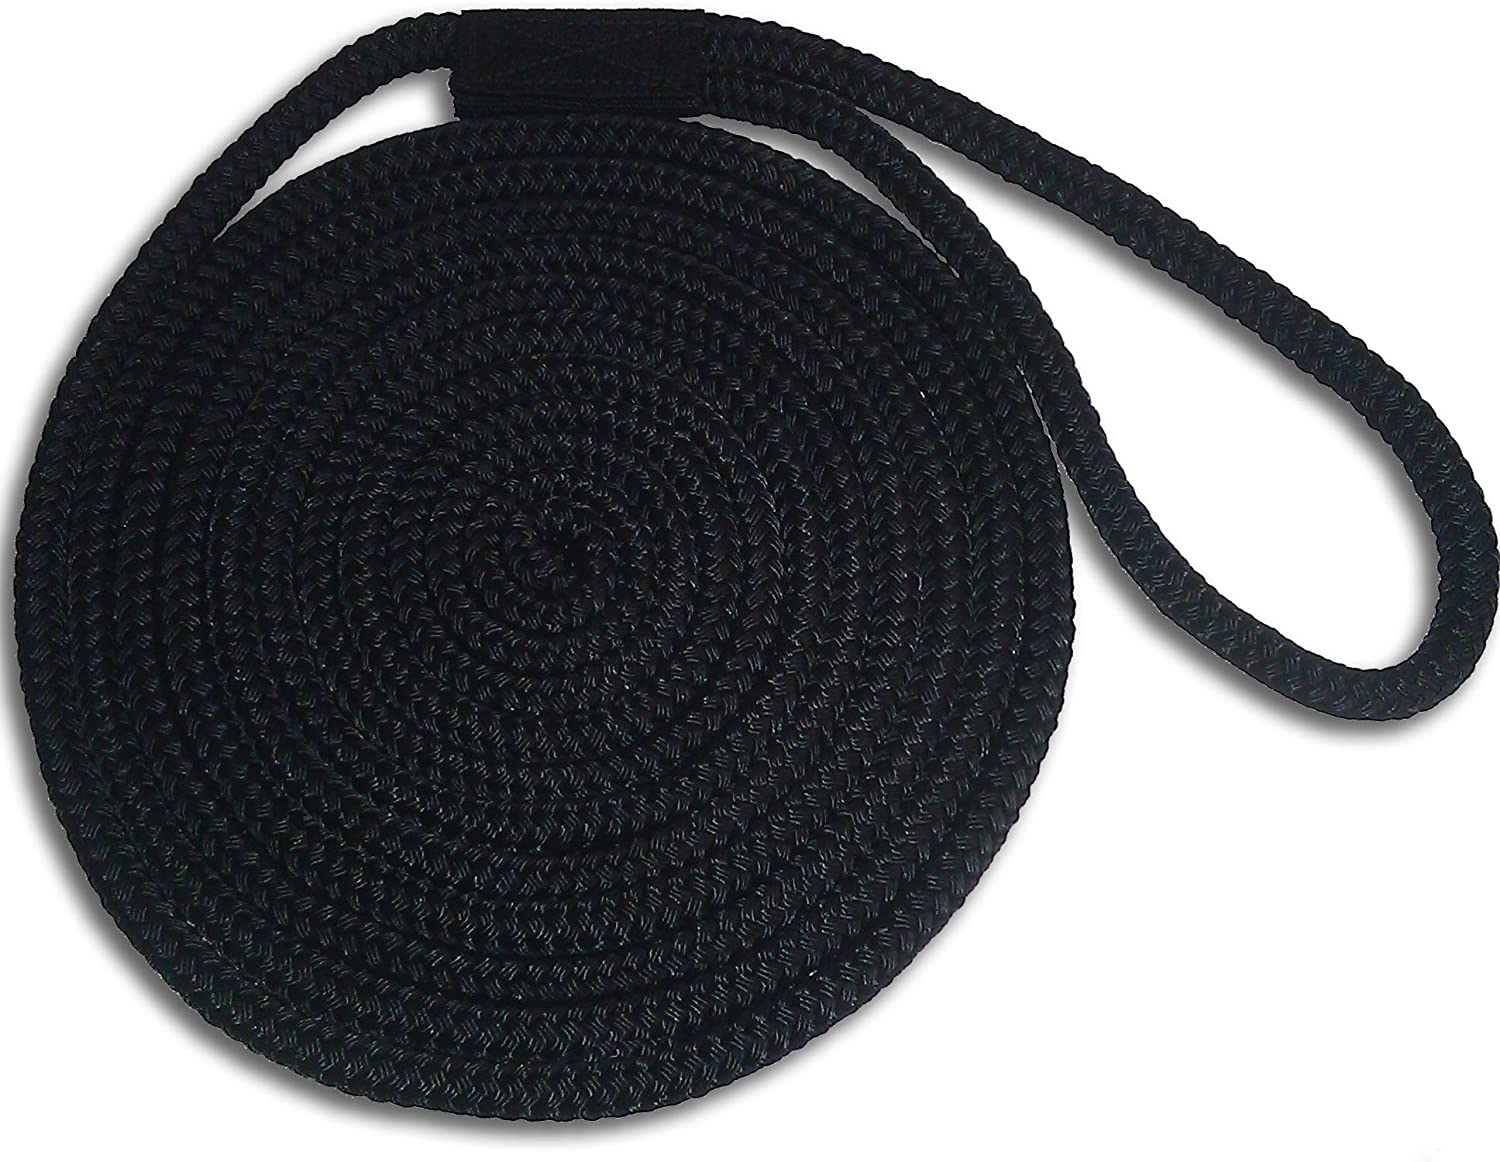 """Black 5//8/"""" x 35/' Double Braid Nylon Dock Lines Made in USA"""